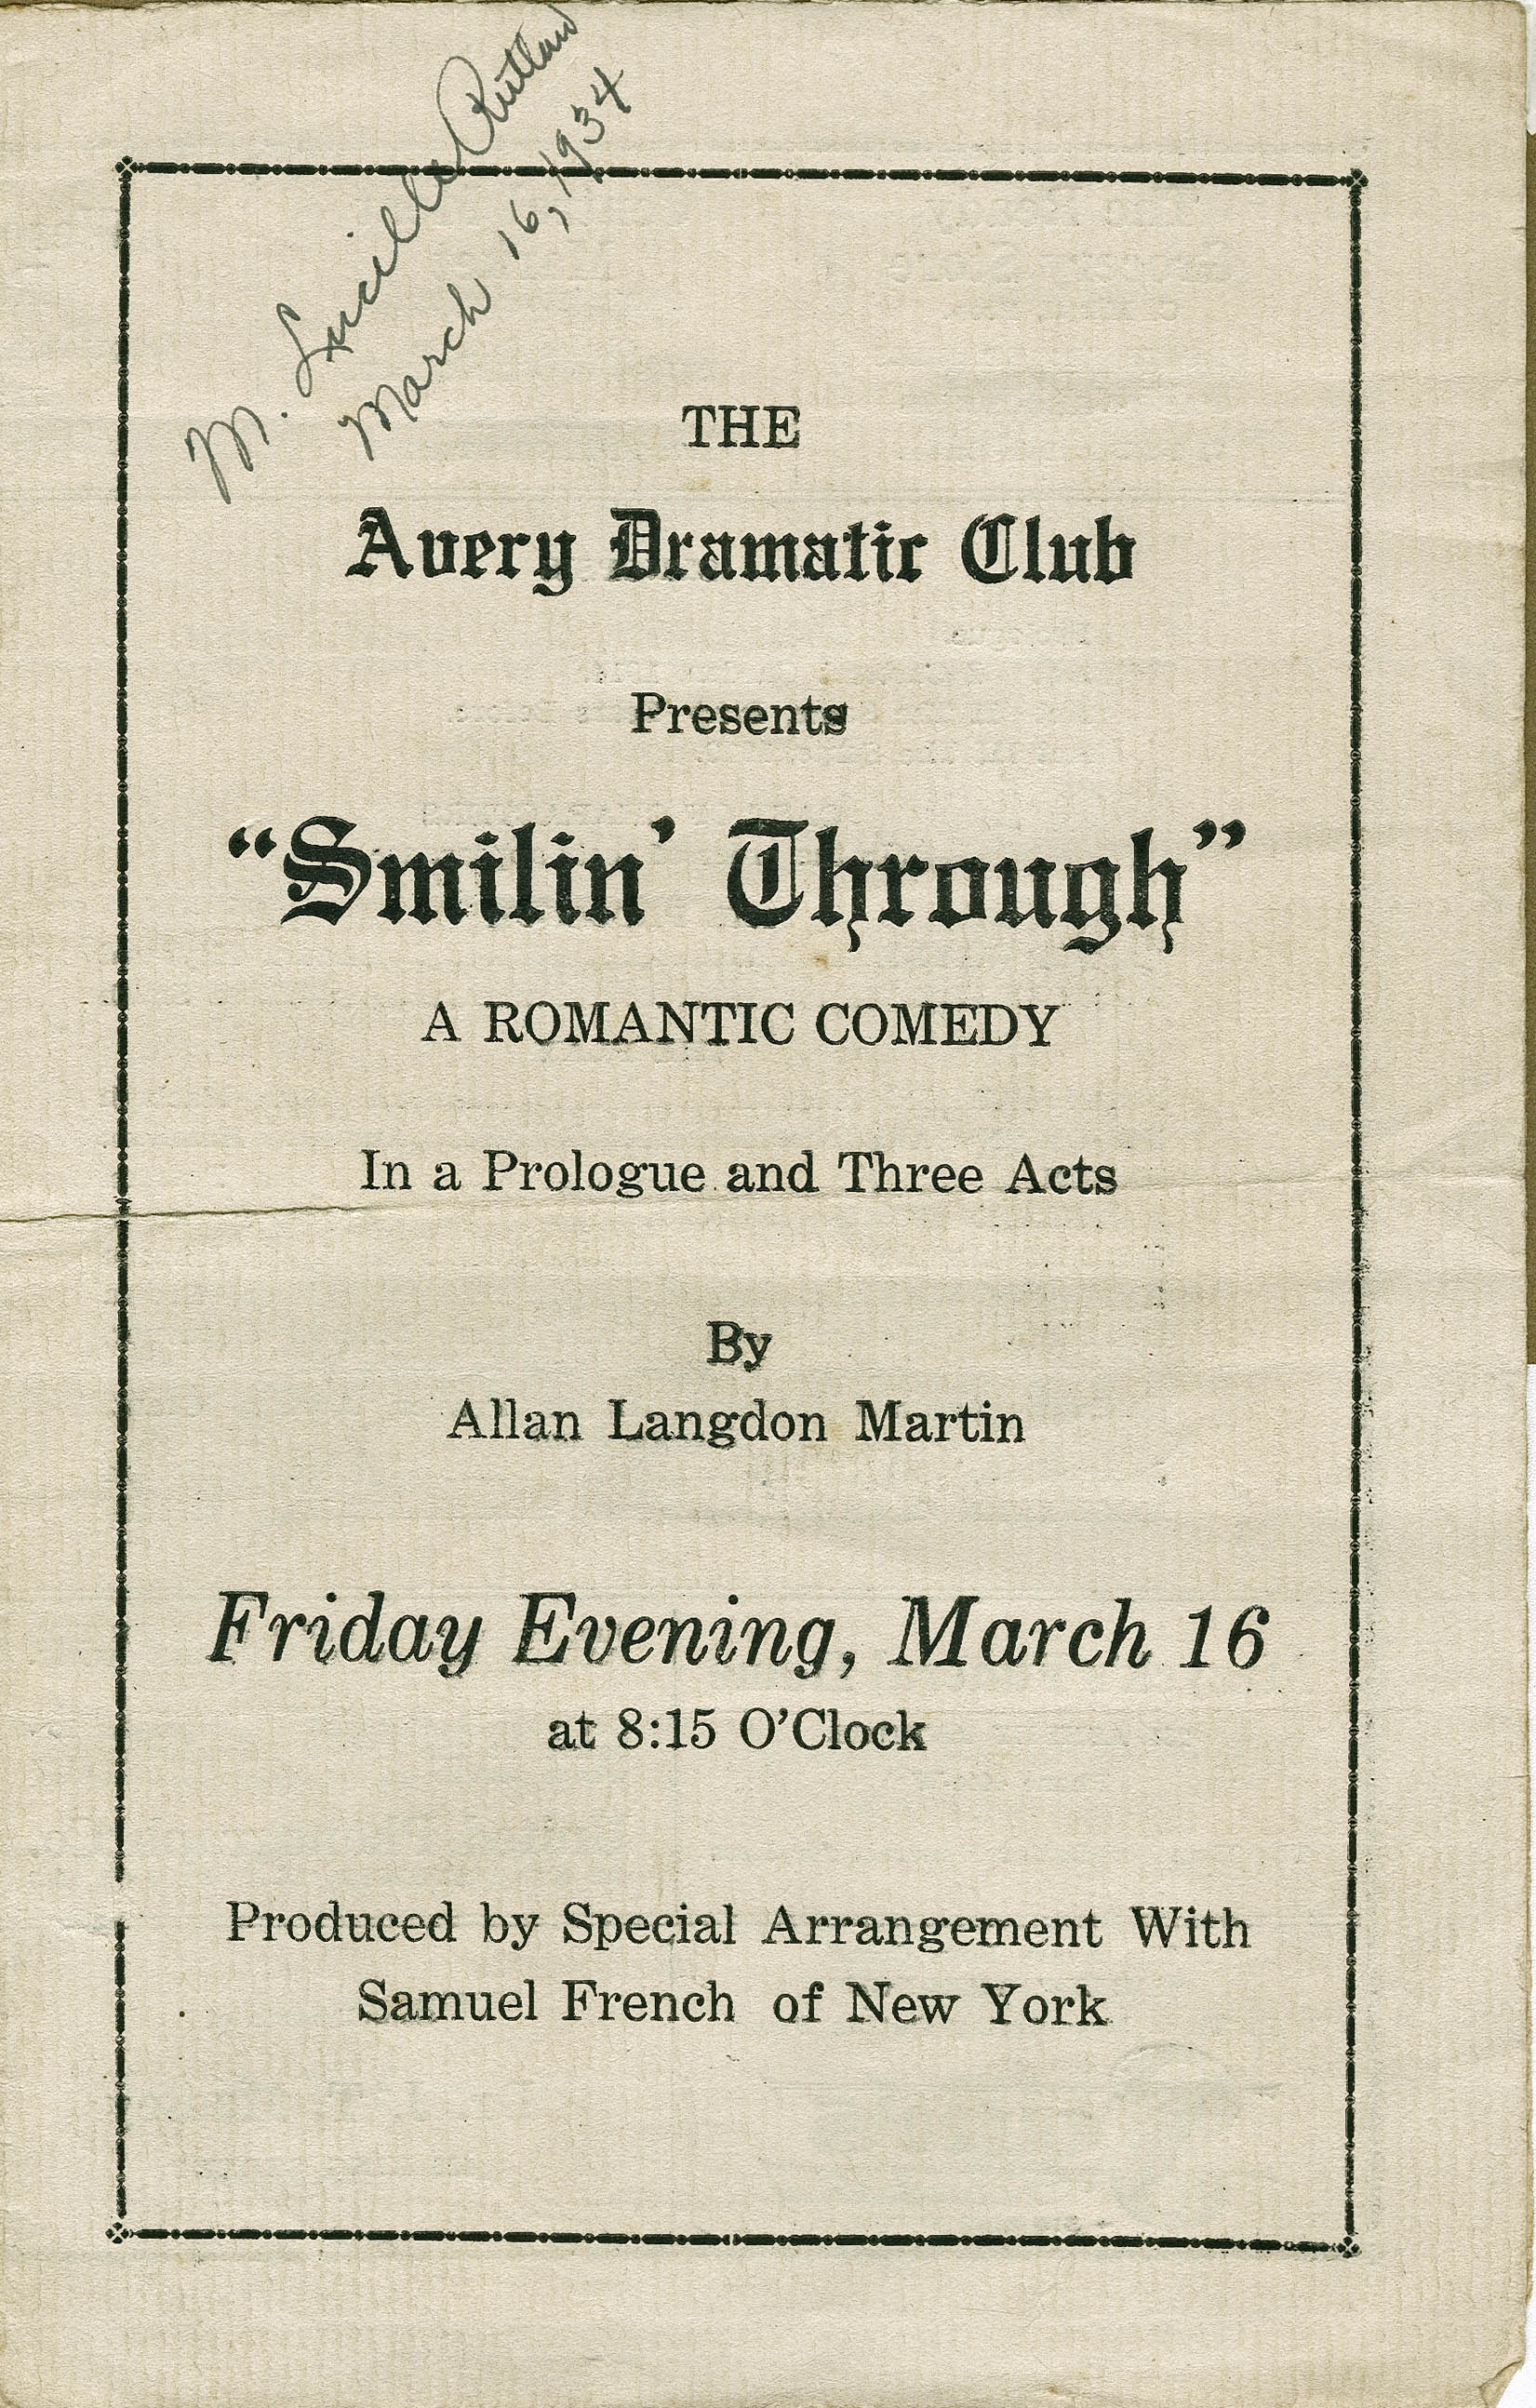 Program for the Avery Dramatic Club's presentation of